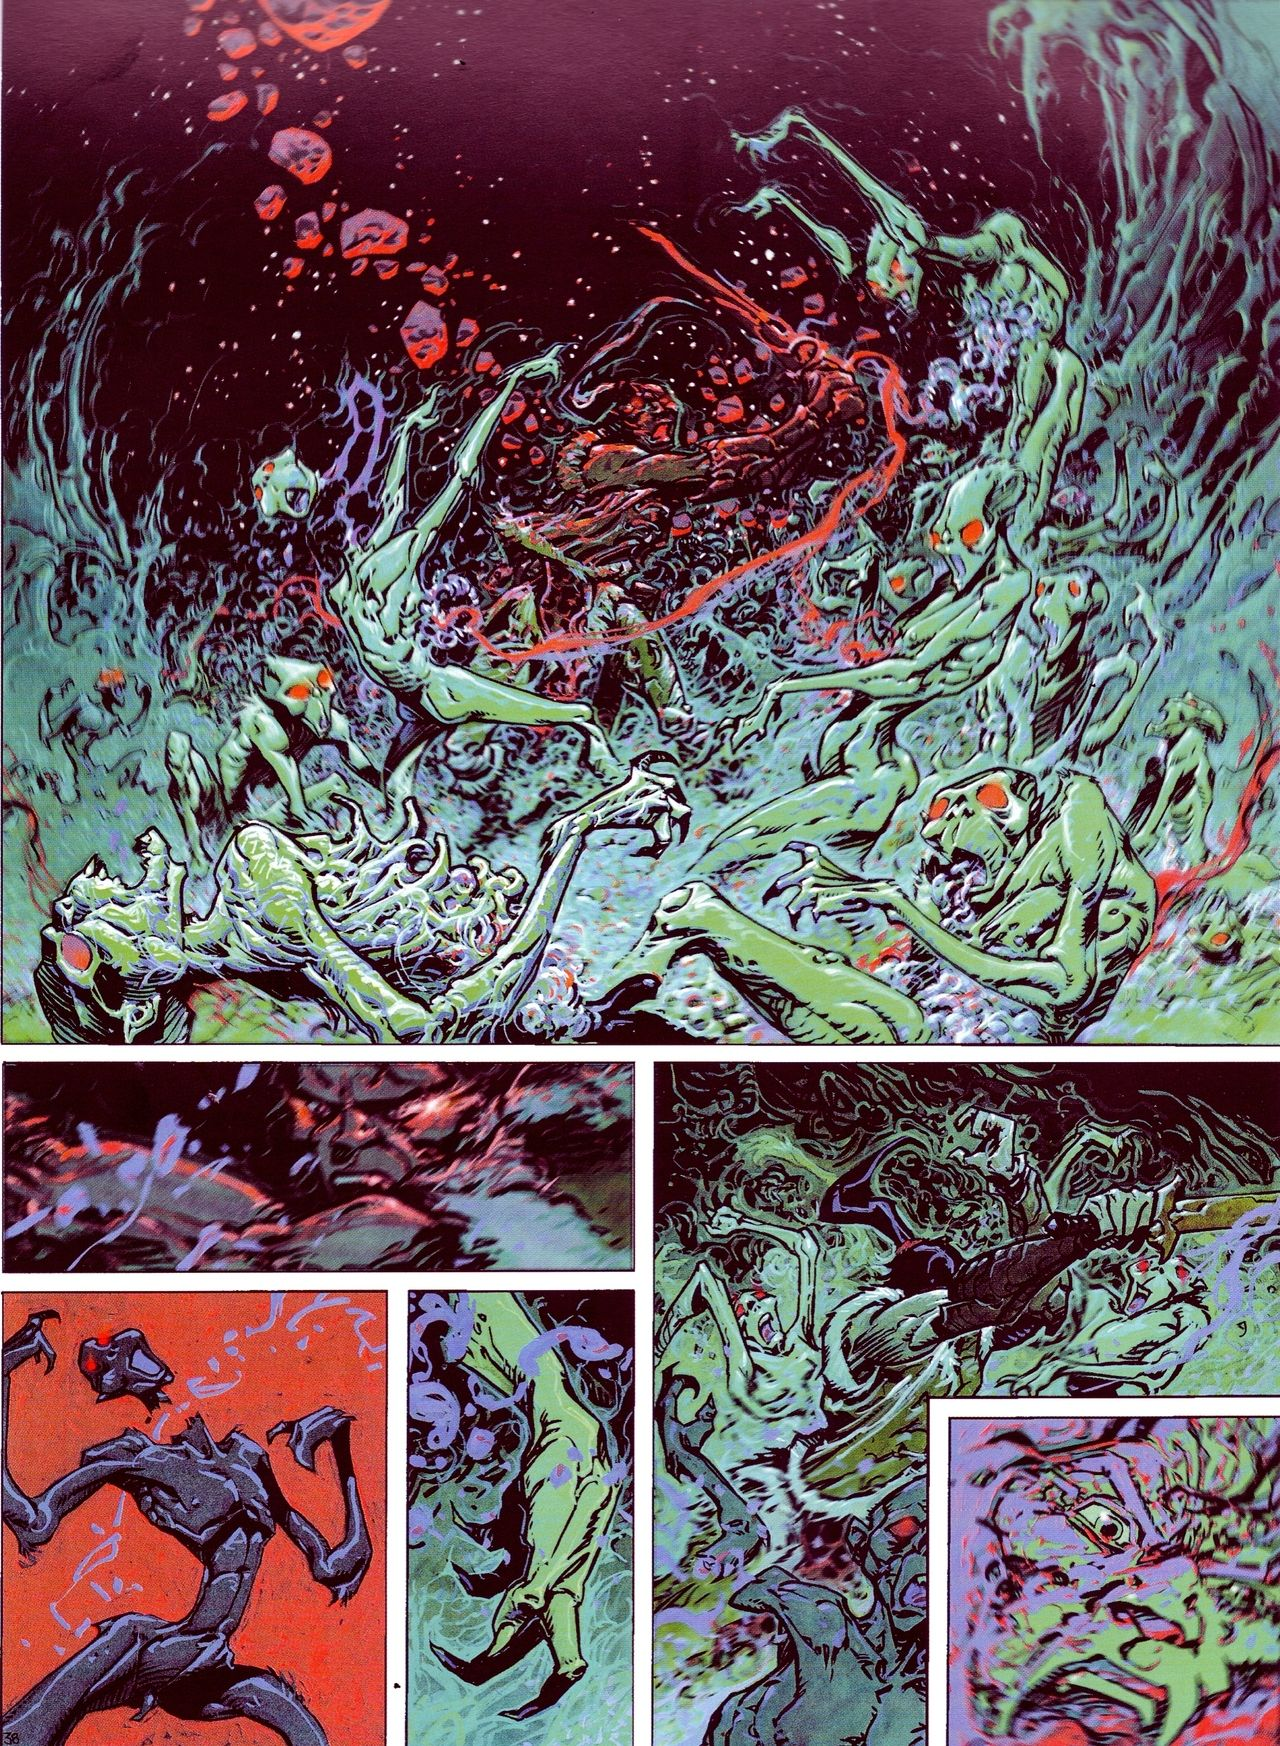 """""""Philippe Caza - French Author (B. 1941) - Page 40 - From """"Nocturnes - Chroniques de la Terre Fixe"""" (Nocturnals), Editions Delcourt, 1999"""""""